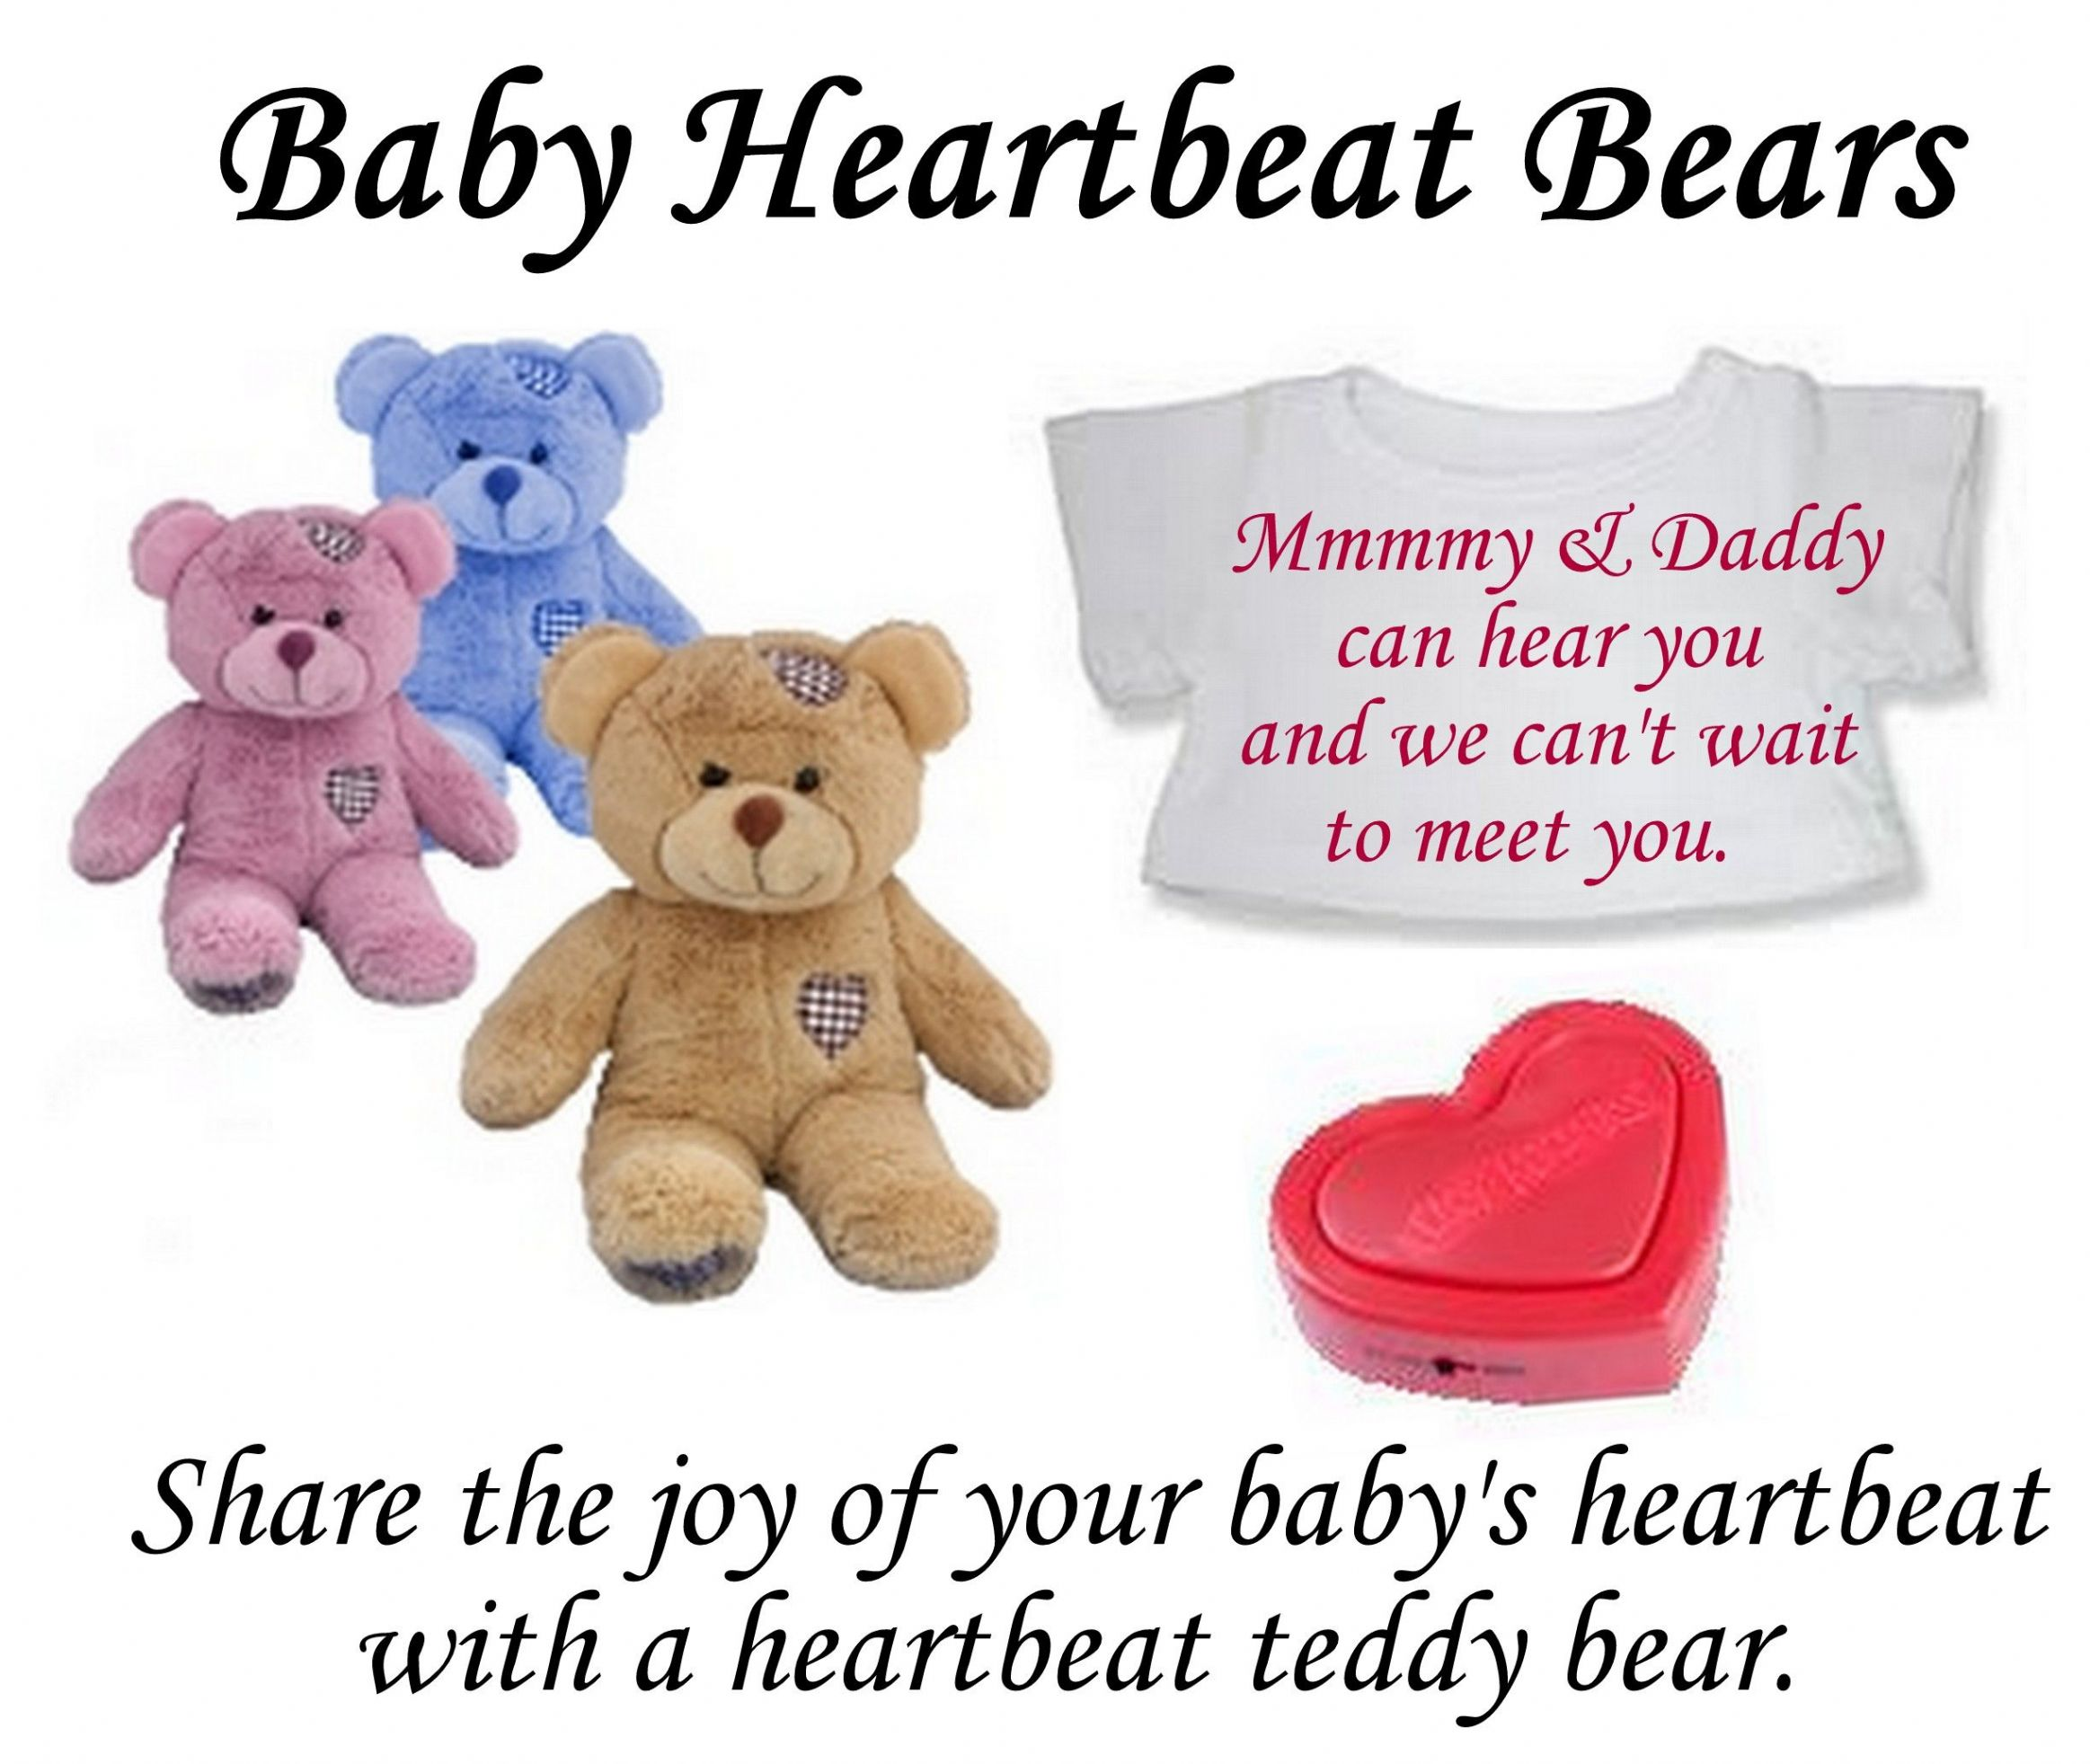 Baby Heartbeat Bears